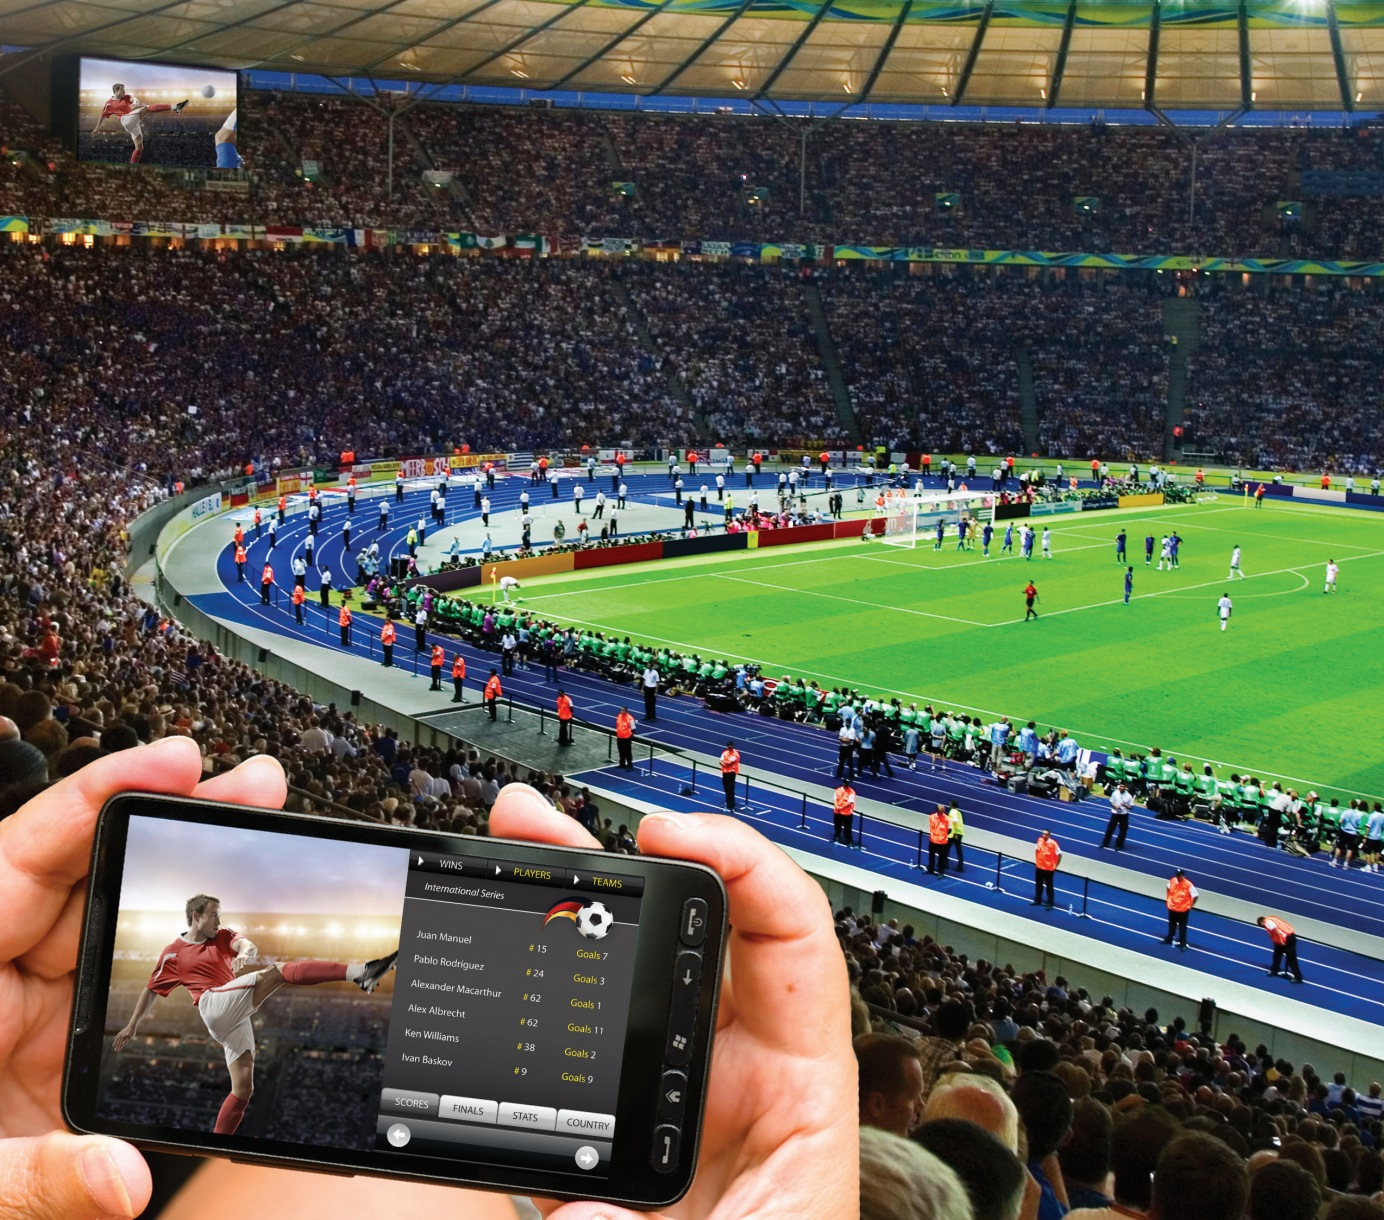 Cisco Unveils StadiumVision Mobile; Delivery of Live Video to Mobile Devices in Sports & Entertainment Arenas